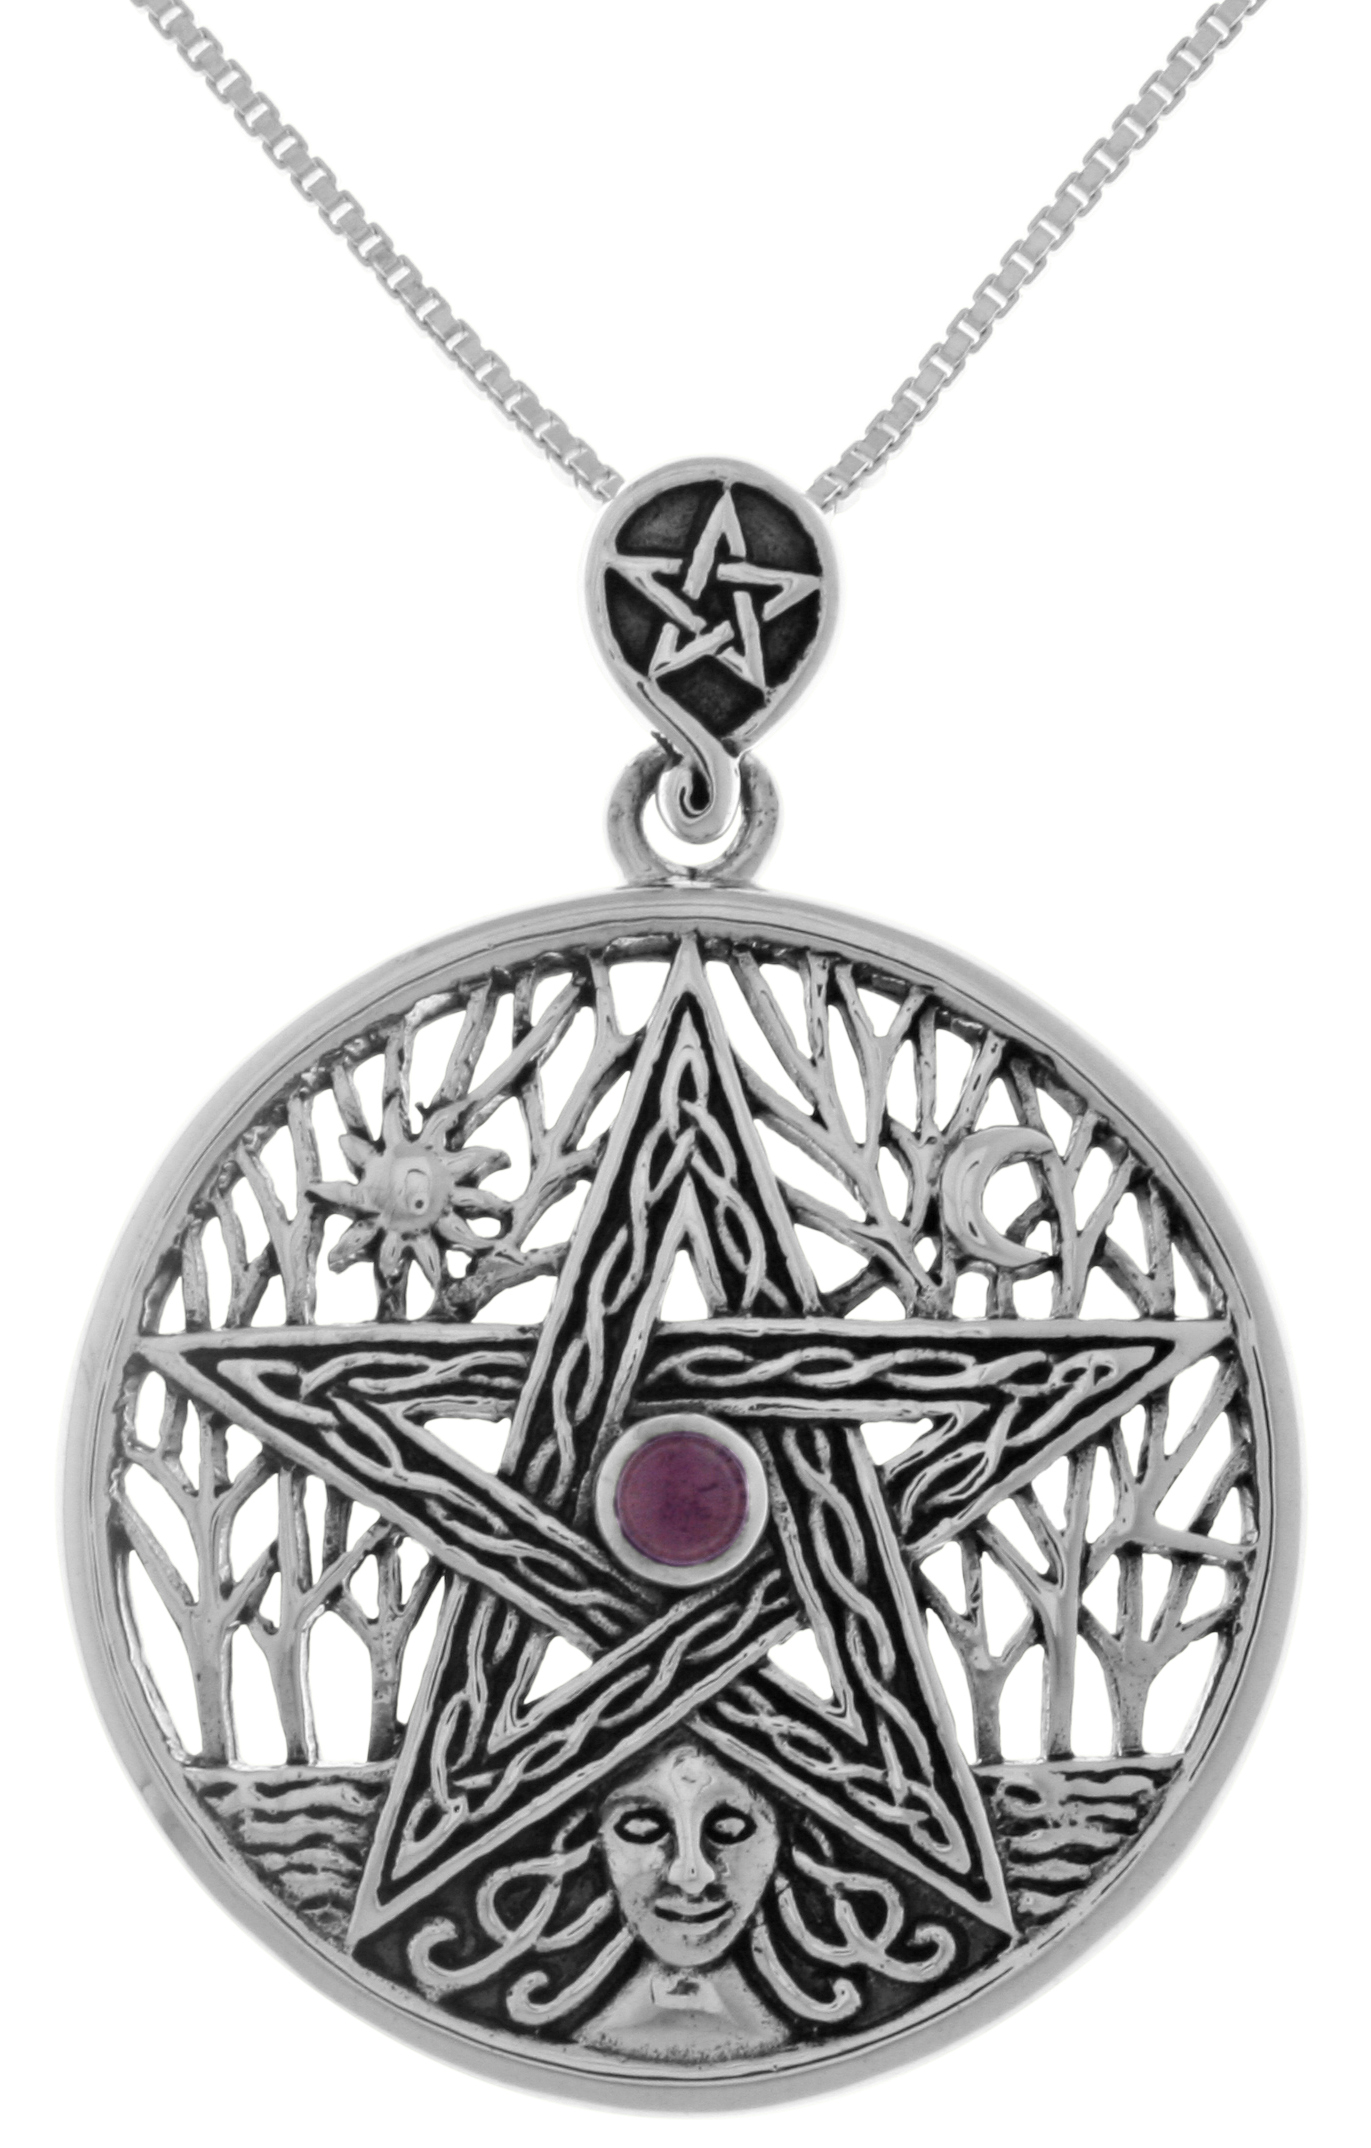 Jewelry Trends Sterling Silver Celtic Goddess Mother Earth Pentacle Pendant with Amethyst on 18 Inch Box Chain Necklace by Jewelry Trends